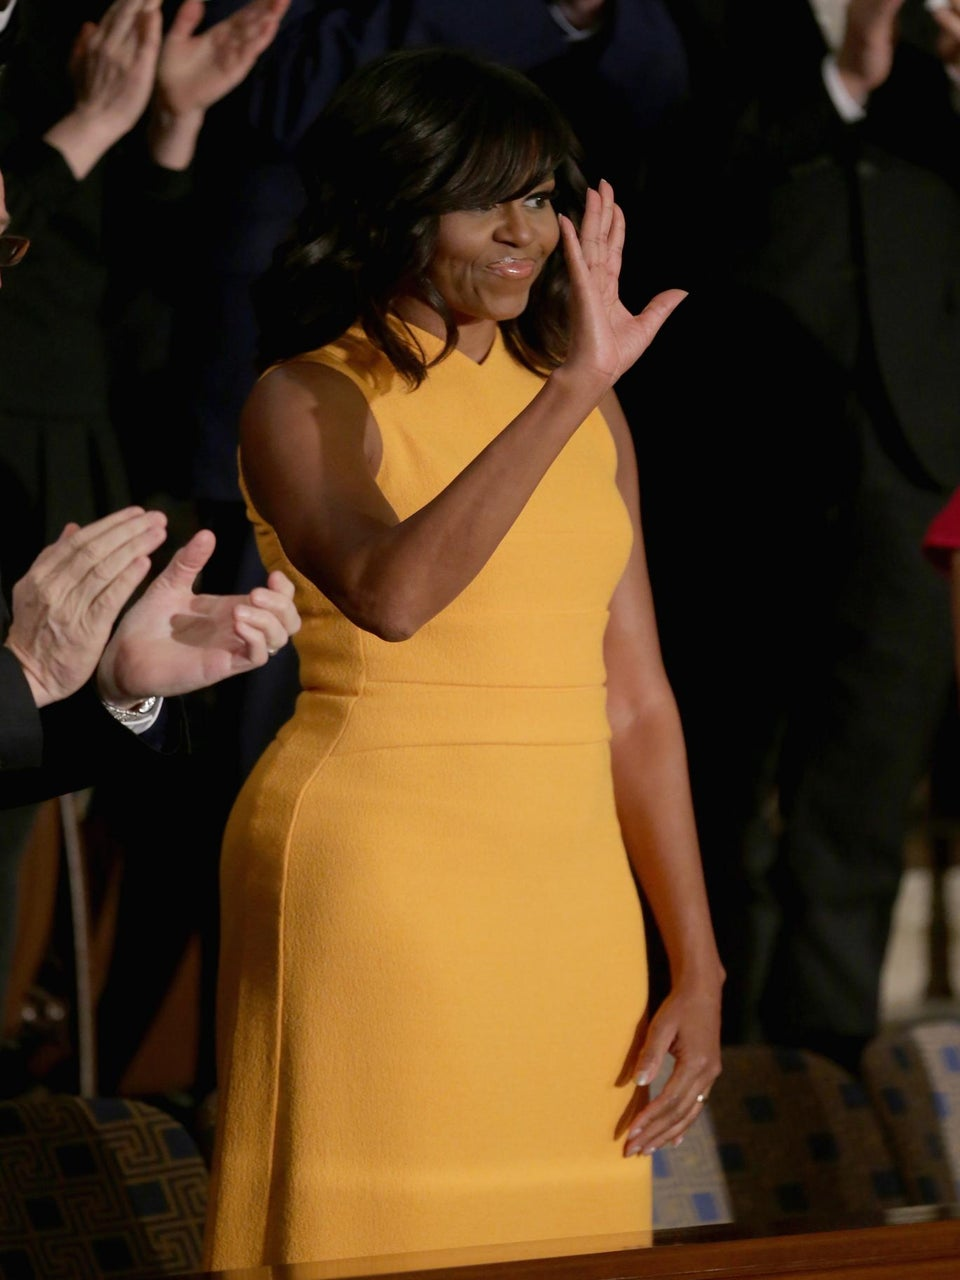 Michelle Obama's State of the Union Narciso Rodriguez Dress Stole the Show